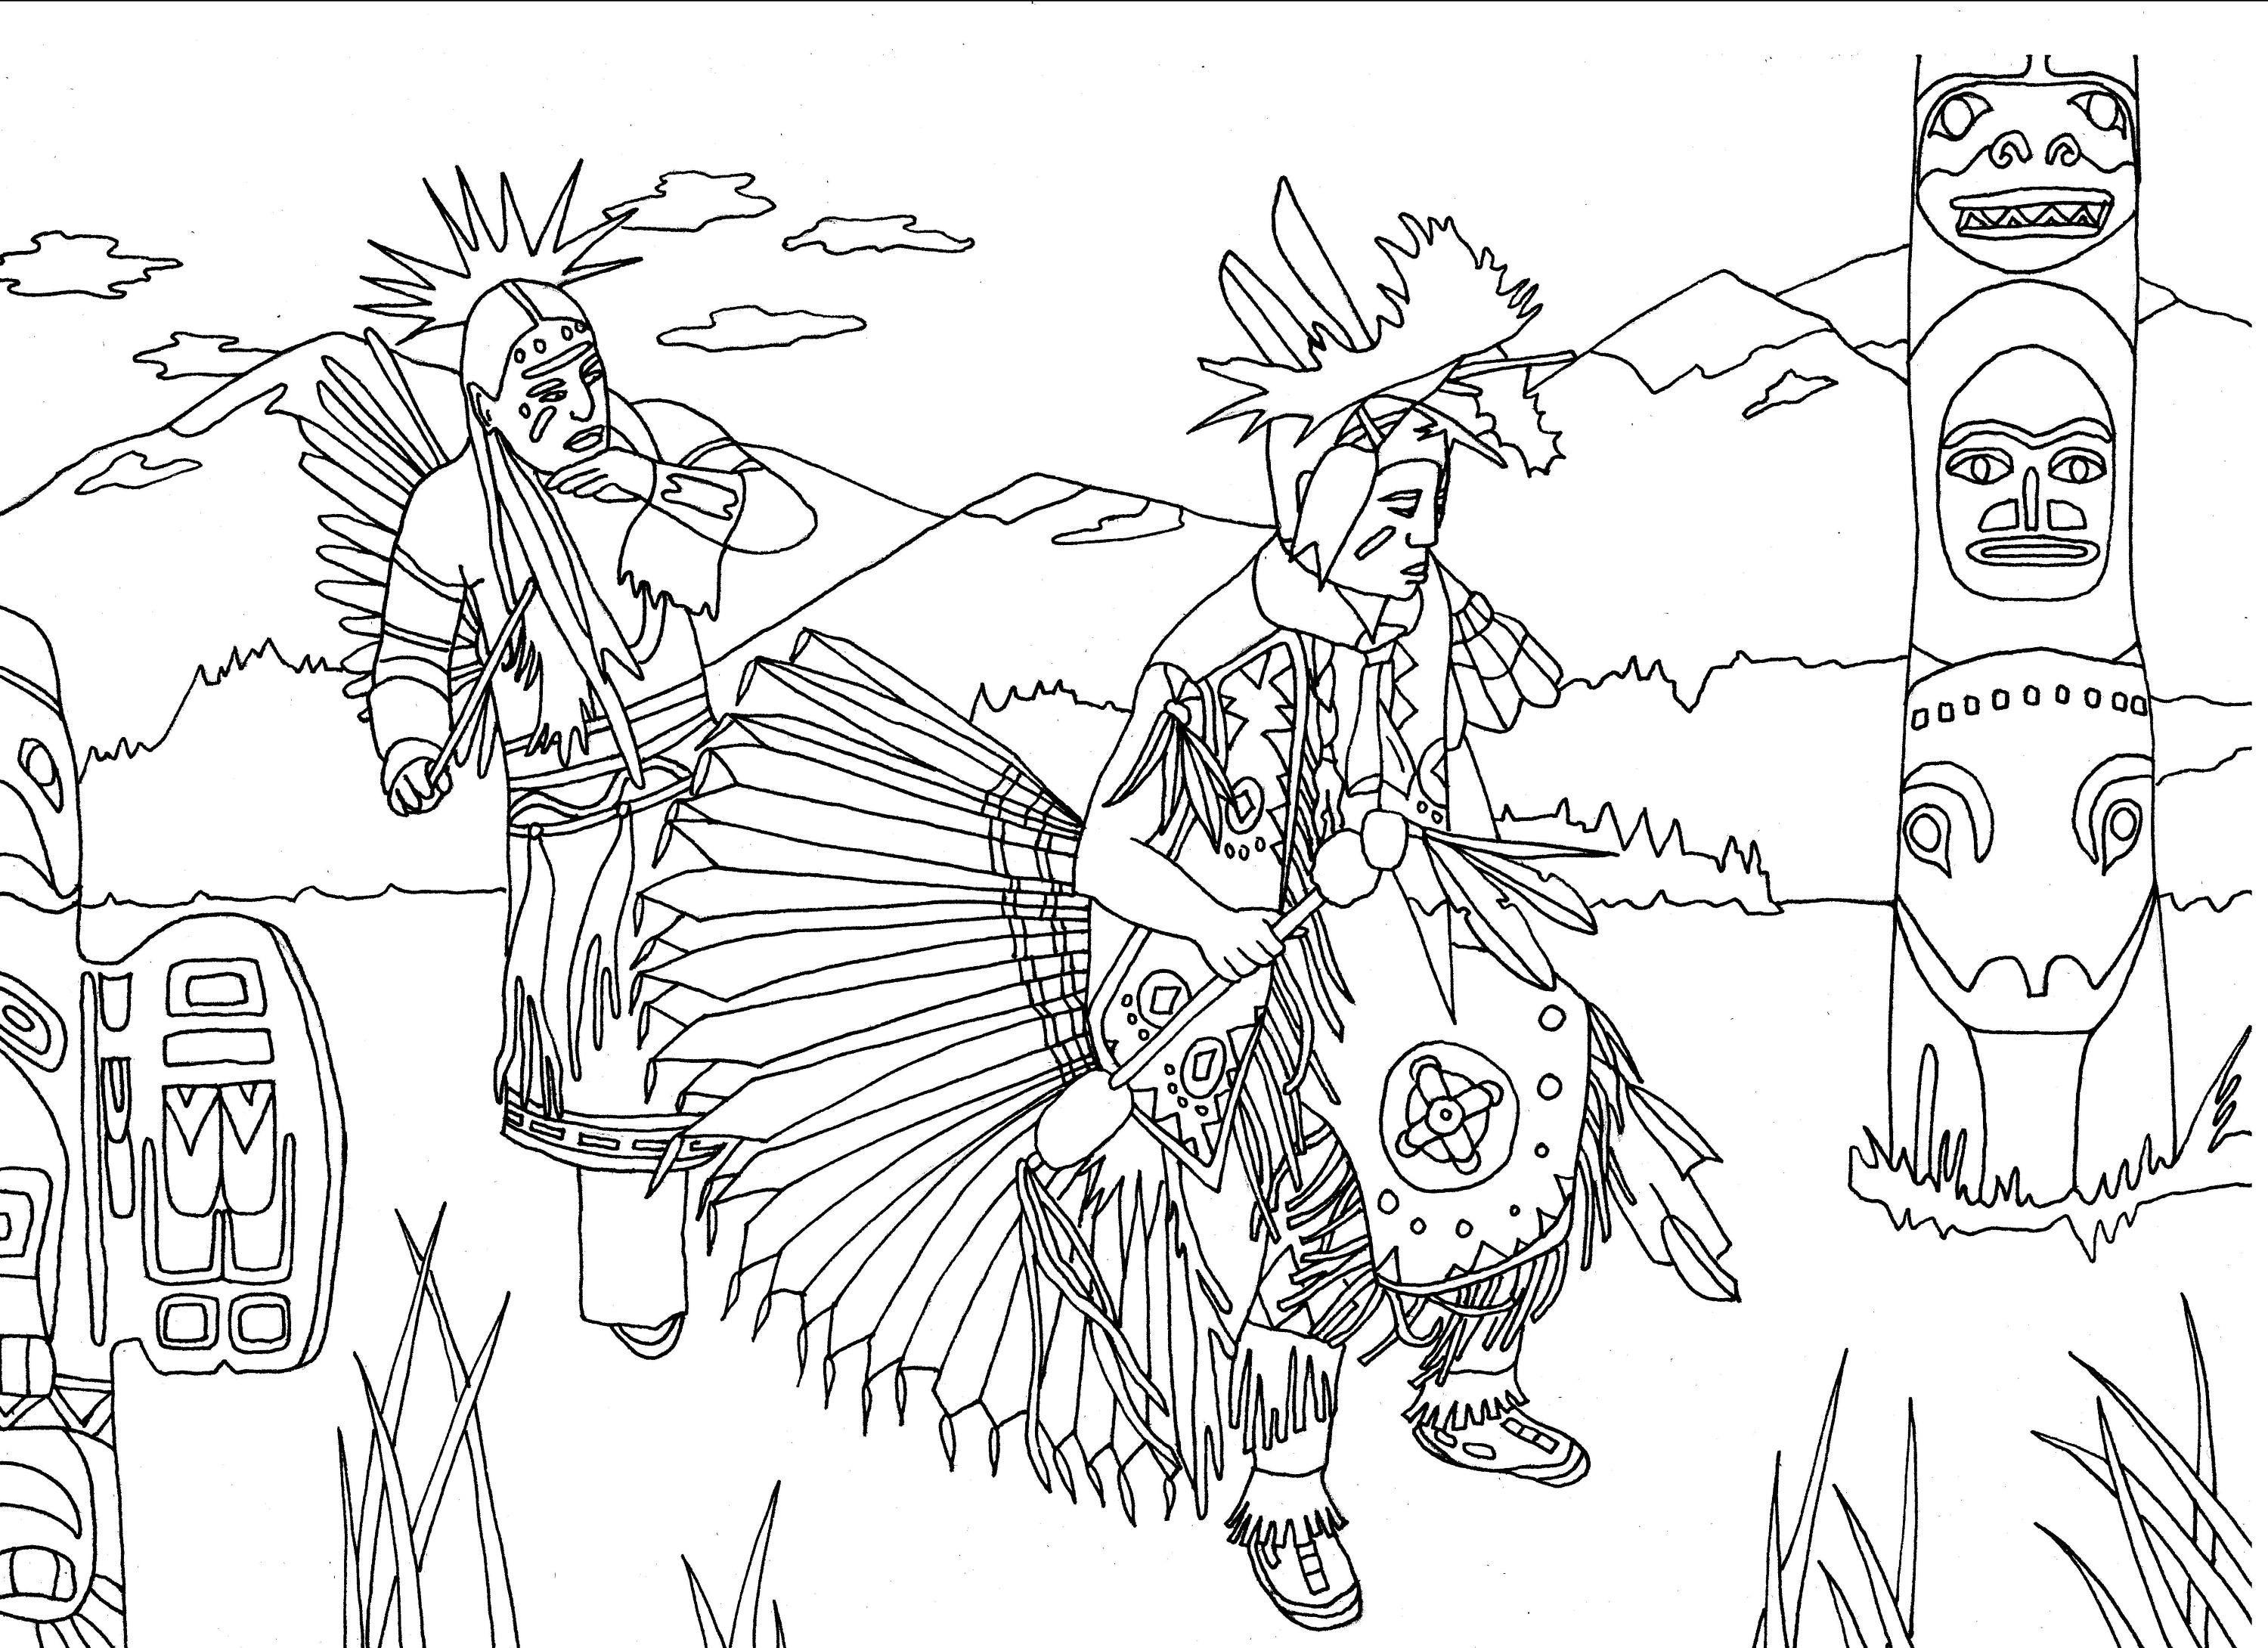 native americans dancing next to a totem from the gallery native americans artist - Native American Coloring Pages